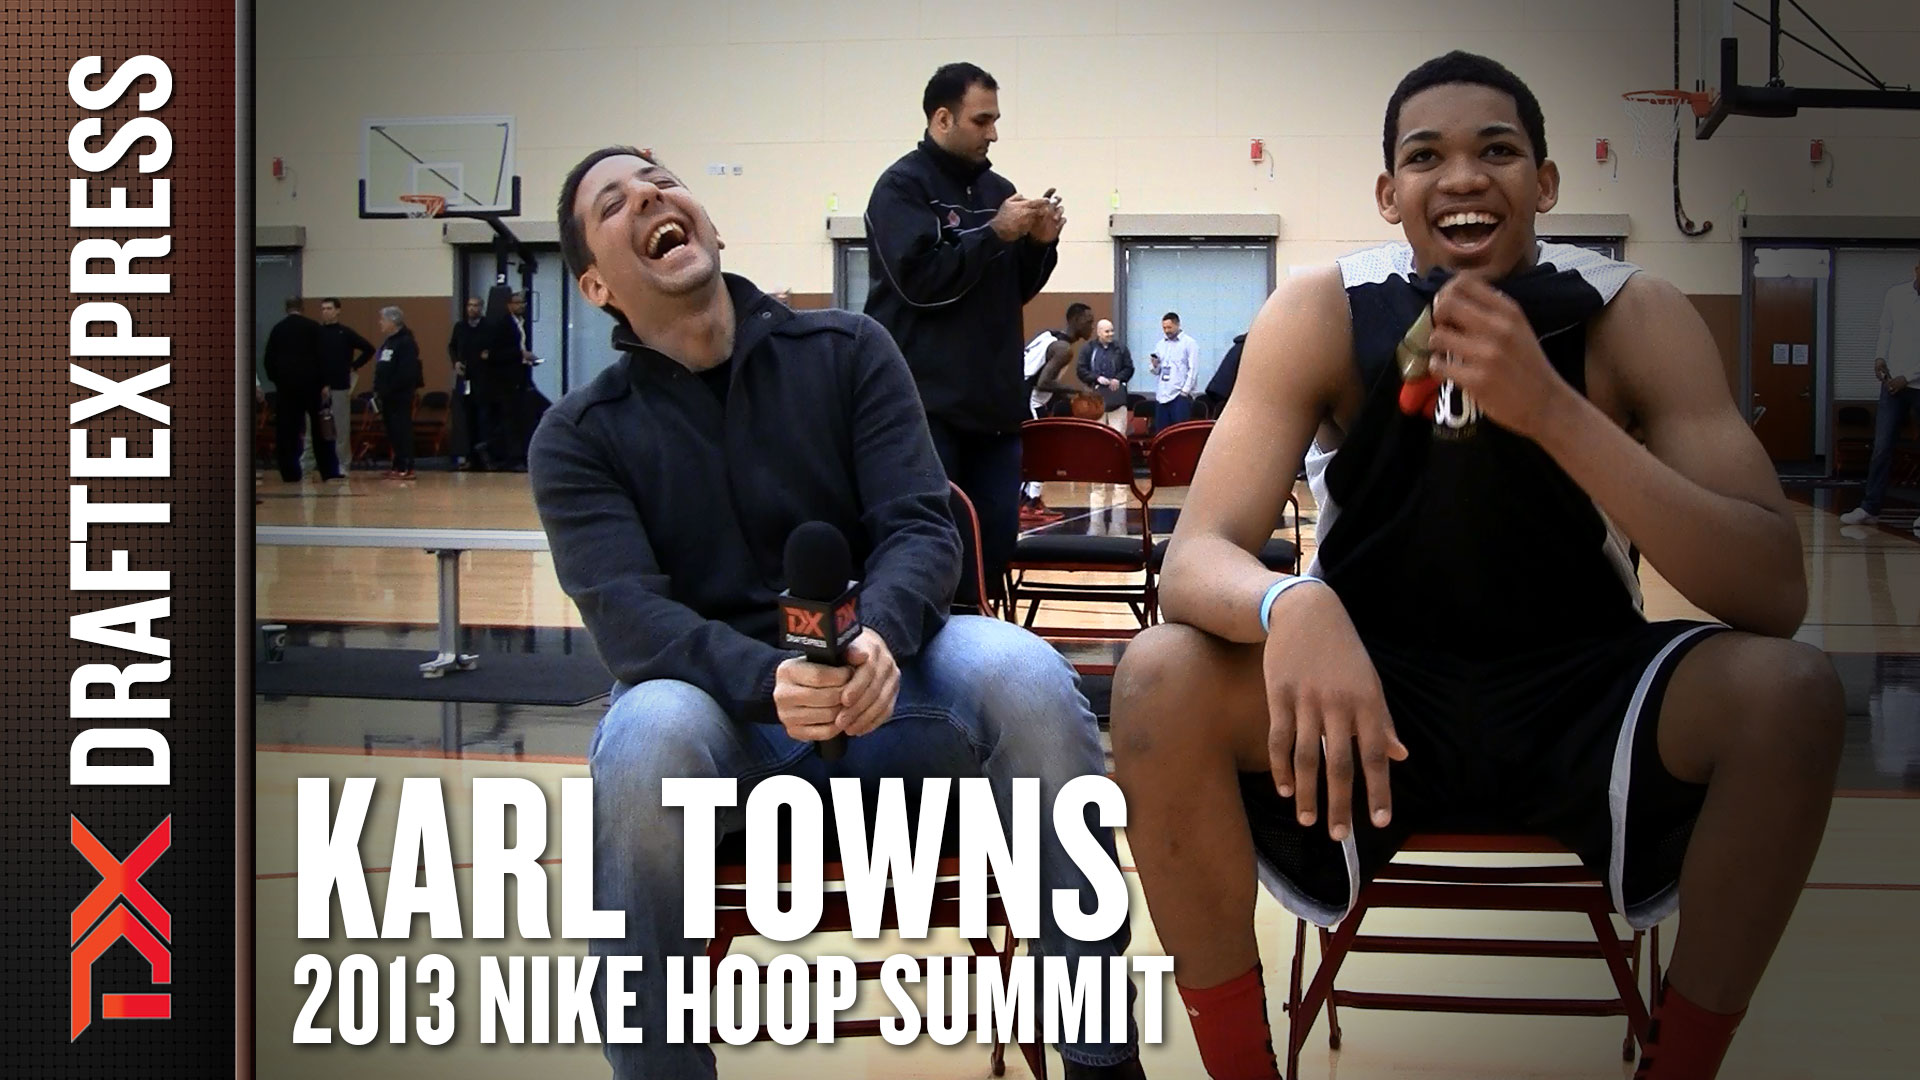 DX Vault: Karl Towns Interview from the 2013 Nike Hoop Summit